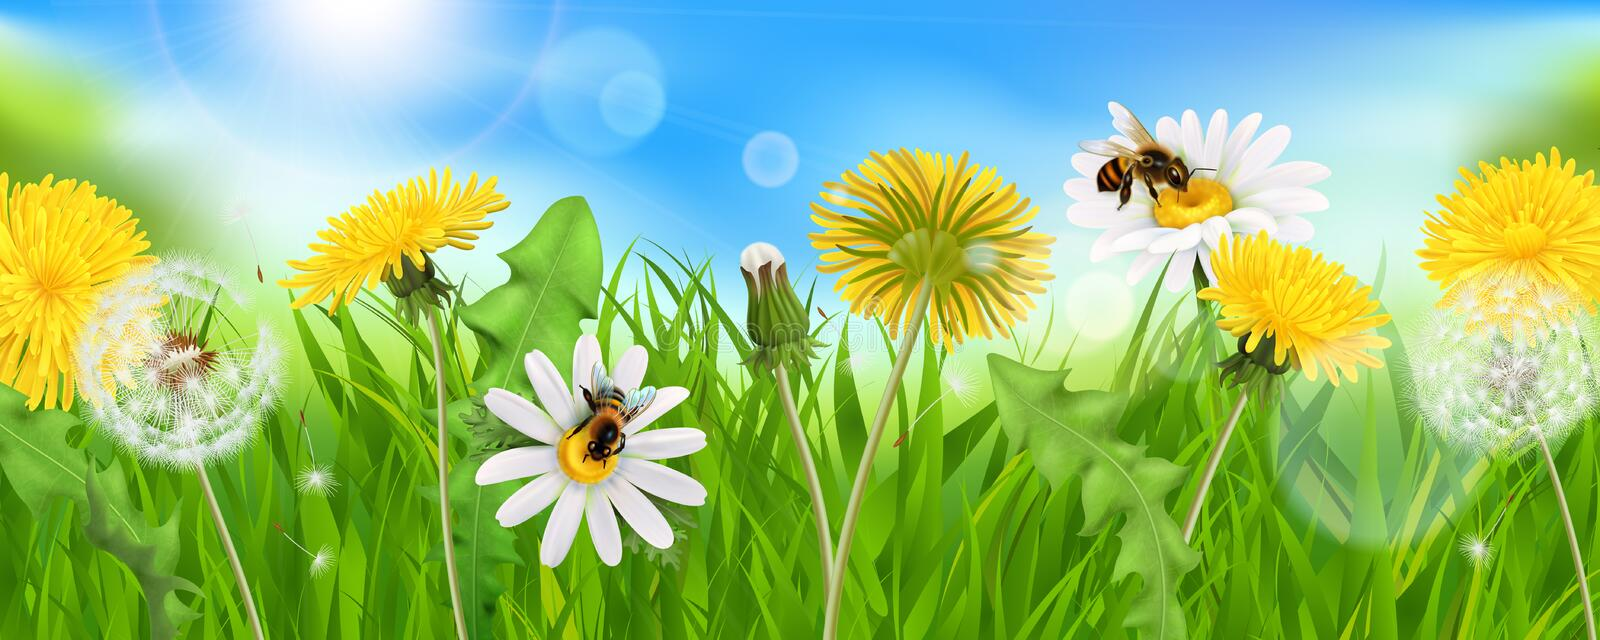 Spring Grass Dandelions Composition royalty free stock image